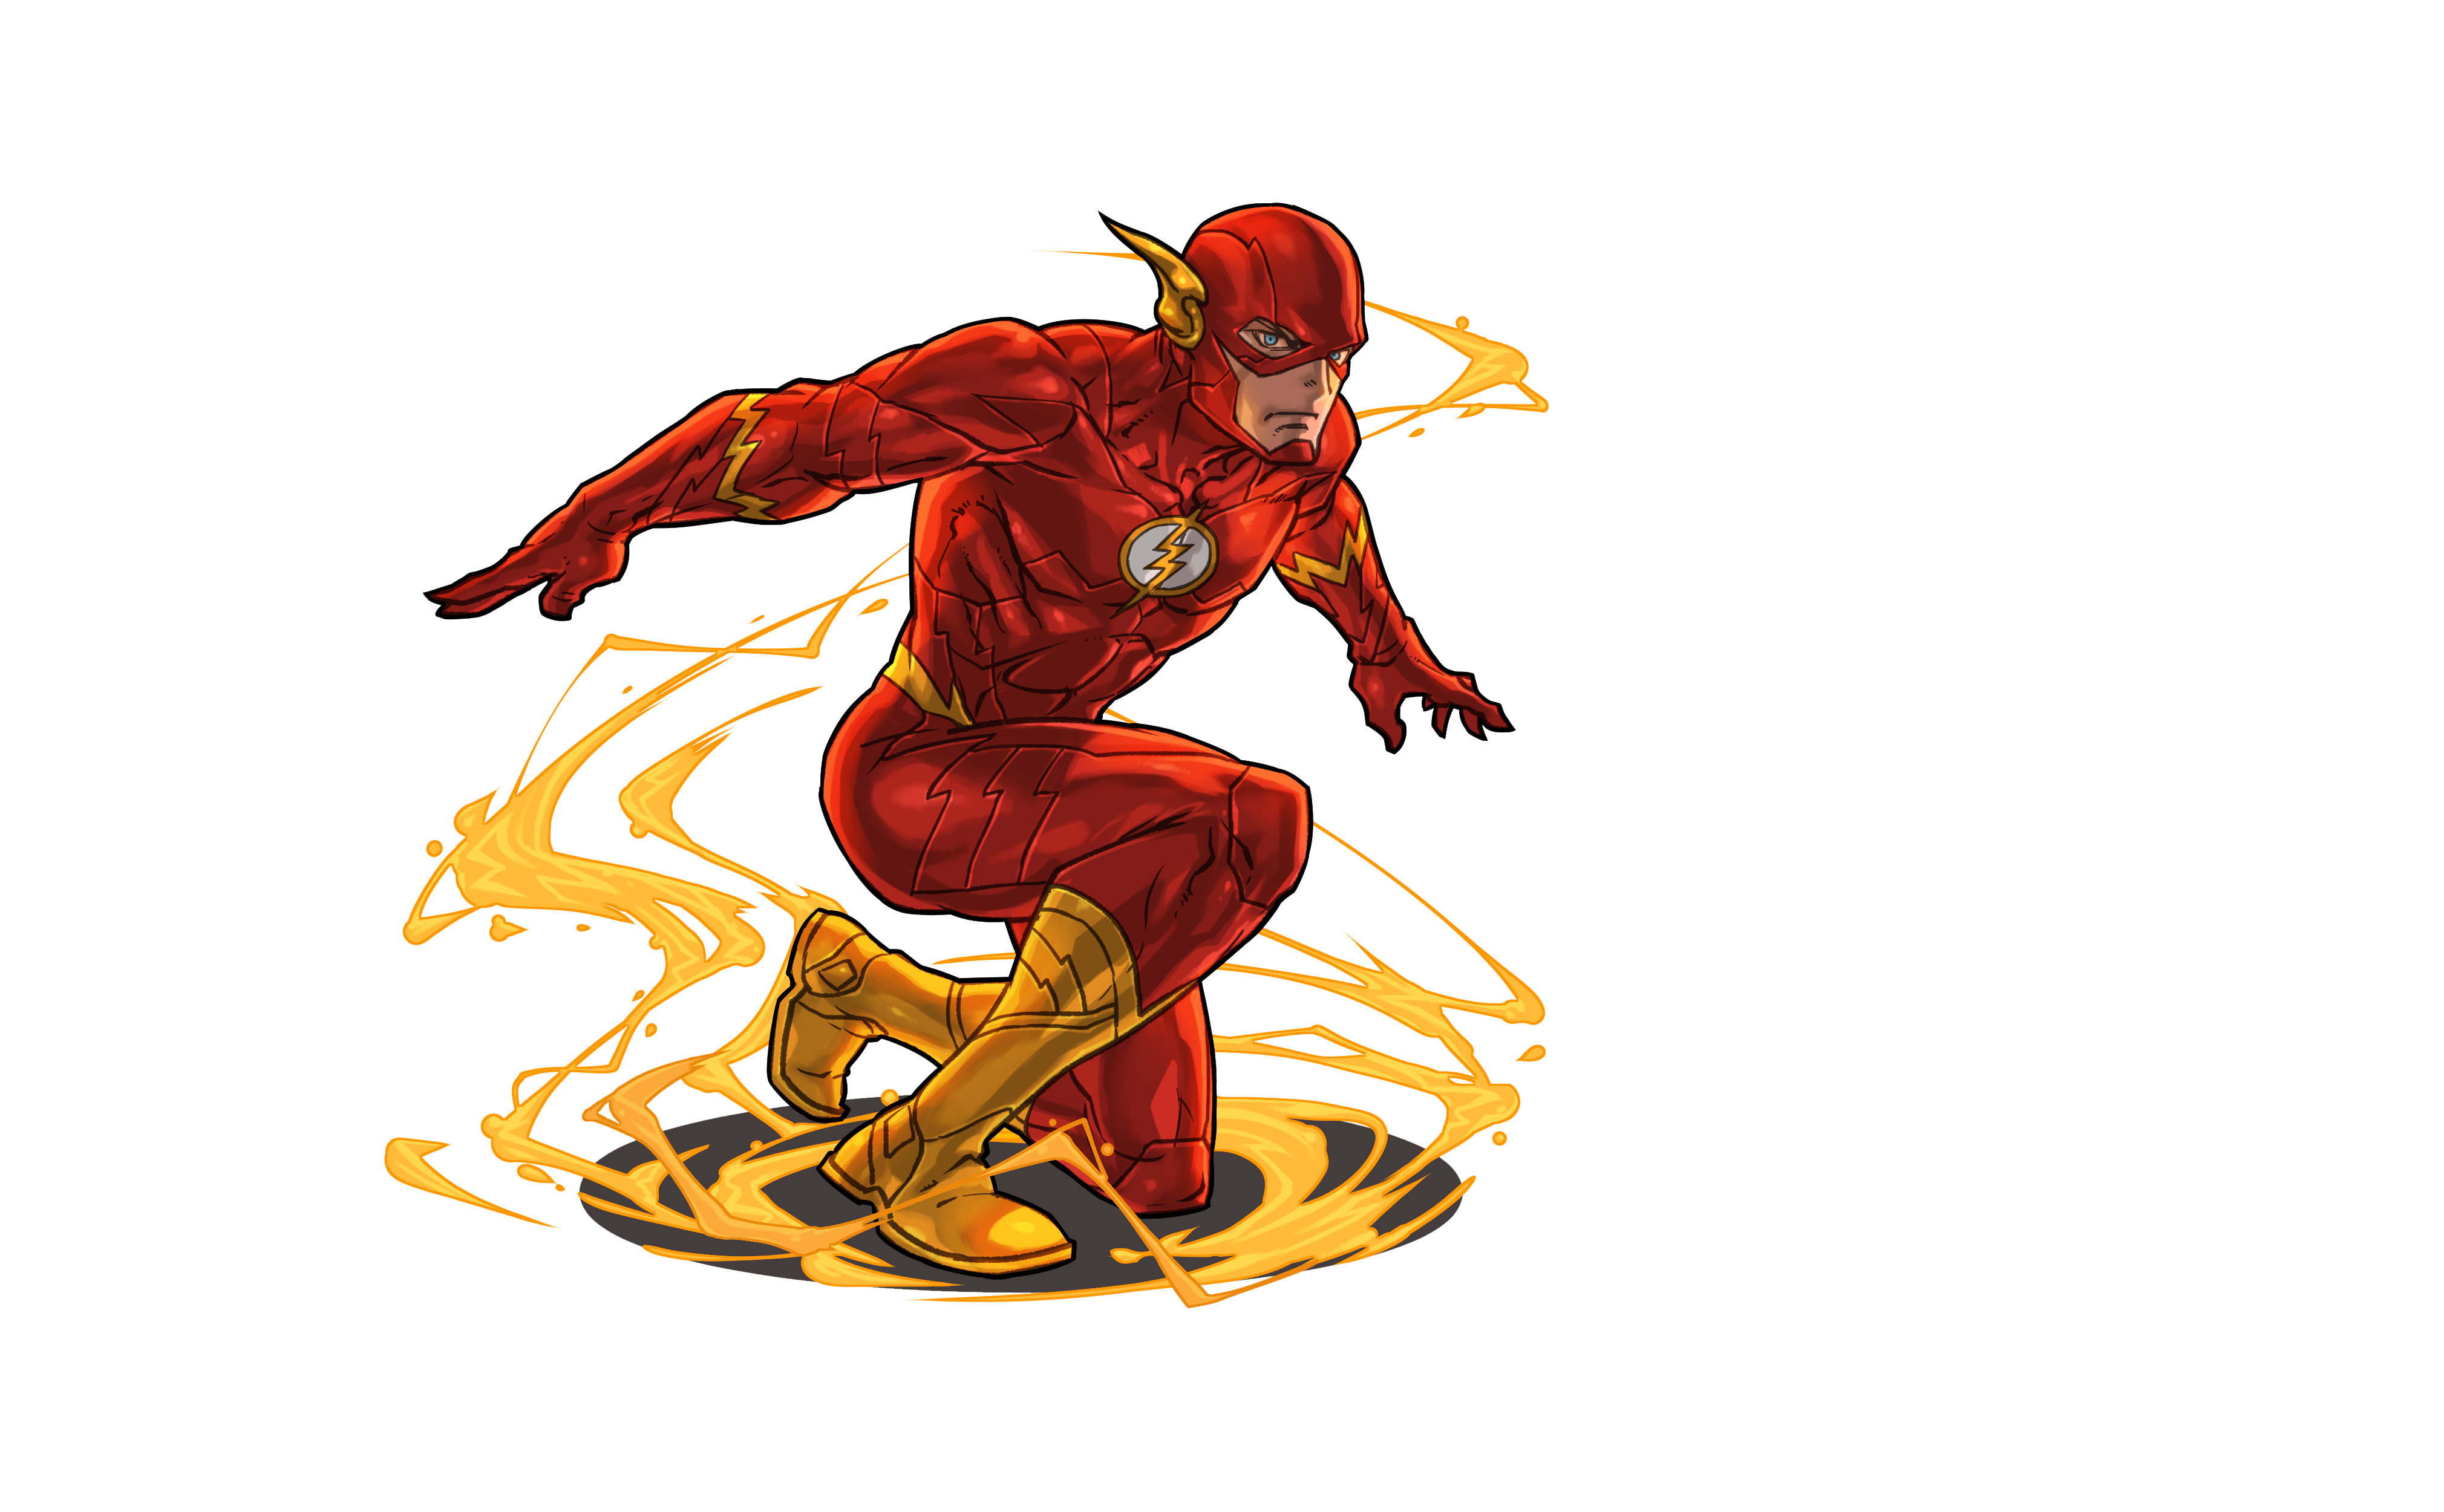 the flash png images superhero series png #27222